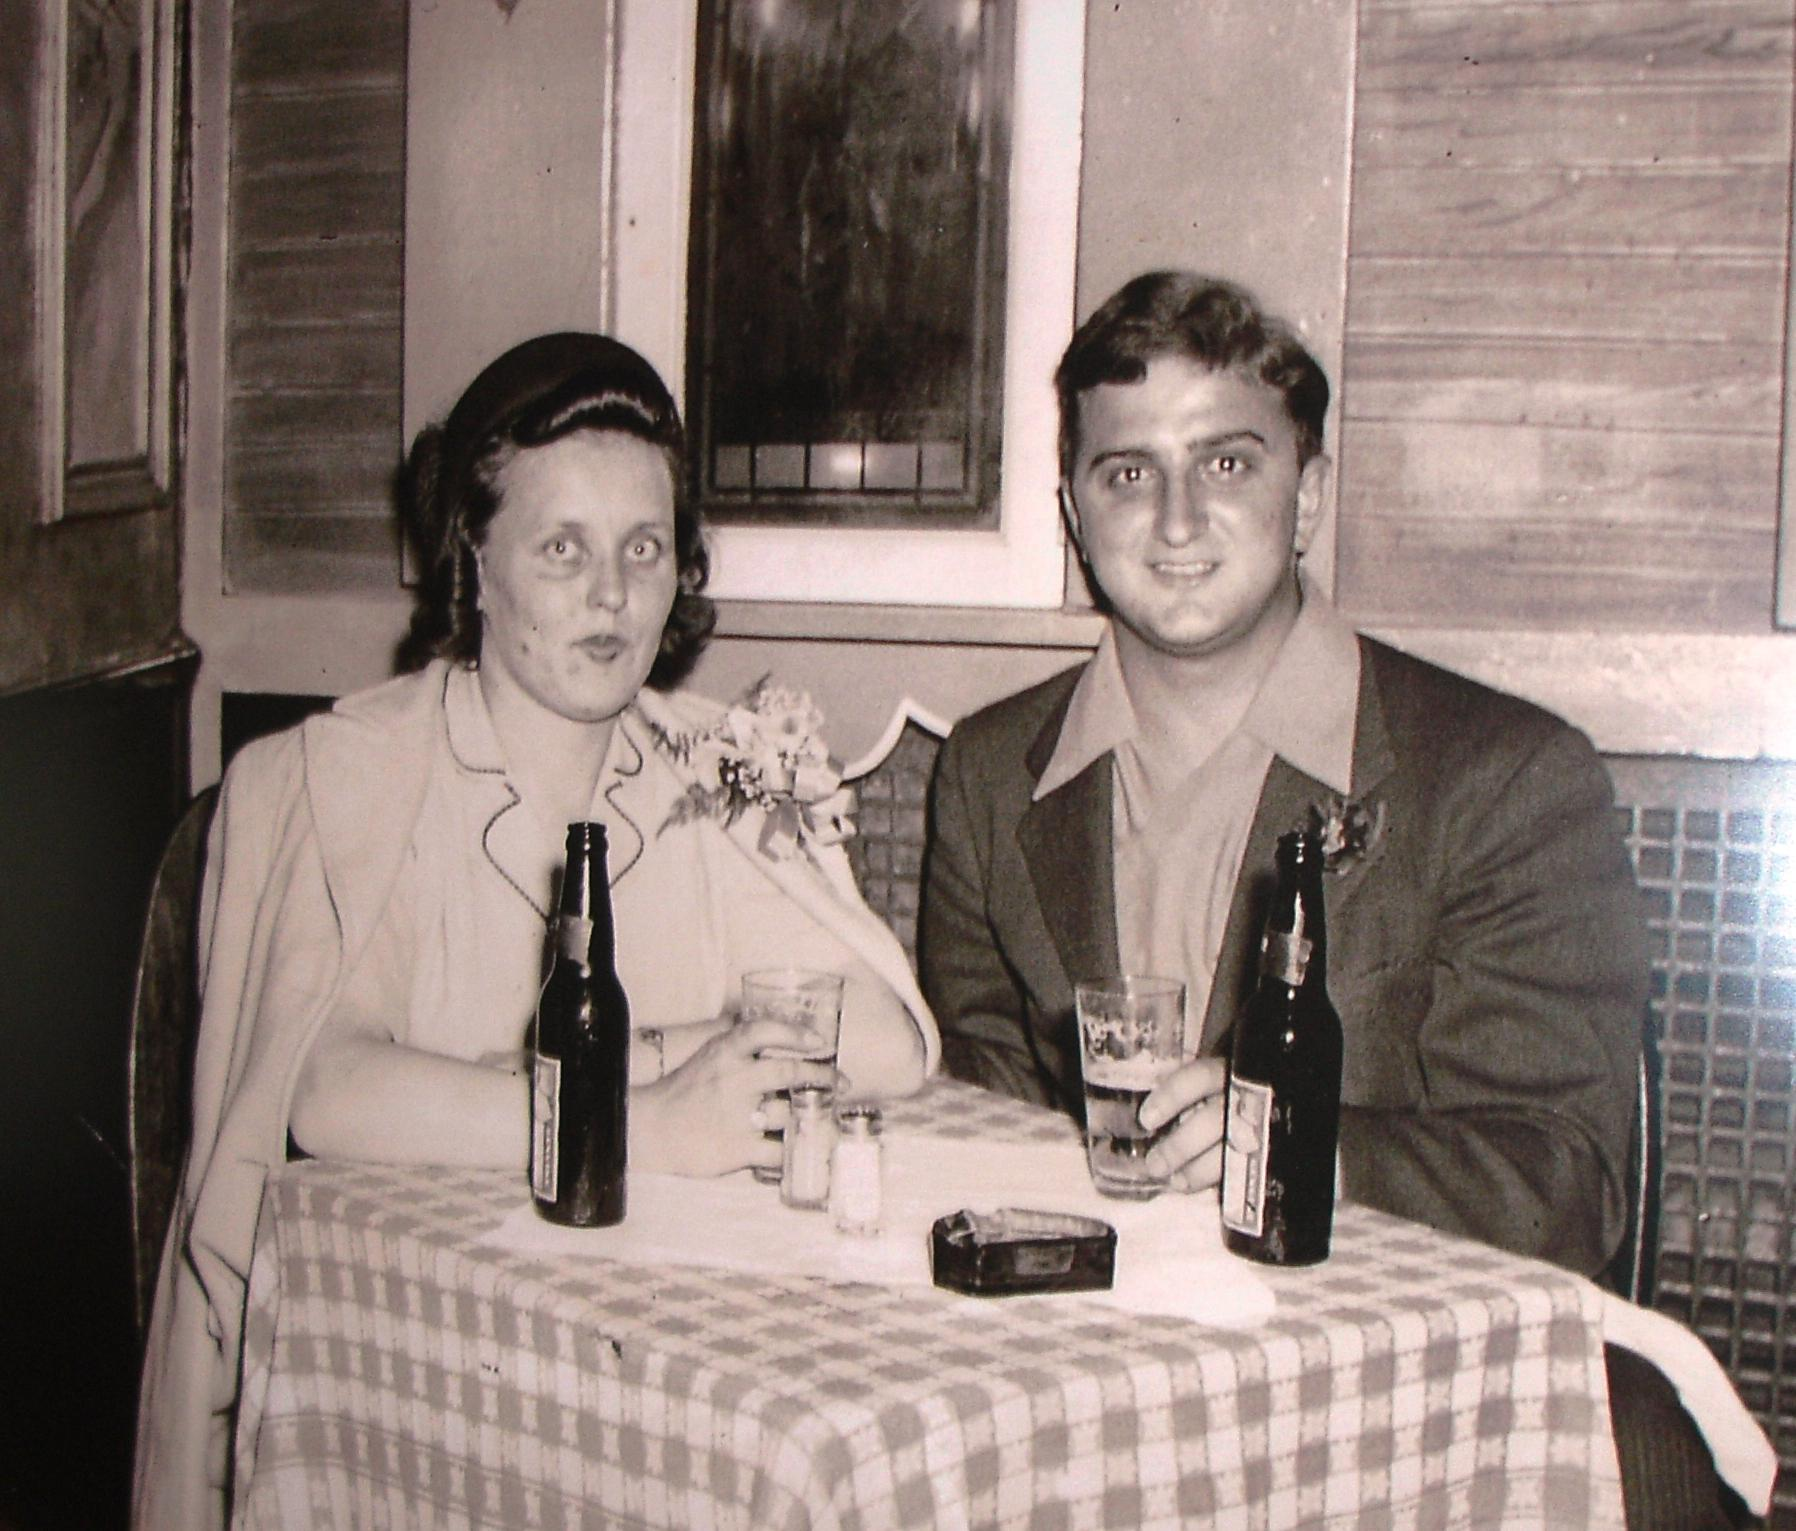 There are historical photos posted around the restaurant, like this one showing founder Chick with his wife Sophie. Want to be able to identify Chick's grandson (Sam, the owner) in today's restaurant? Imagine this photo of Chick with his head shaved, and he could practically be Sam's twin!